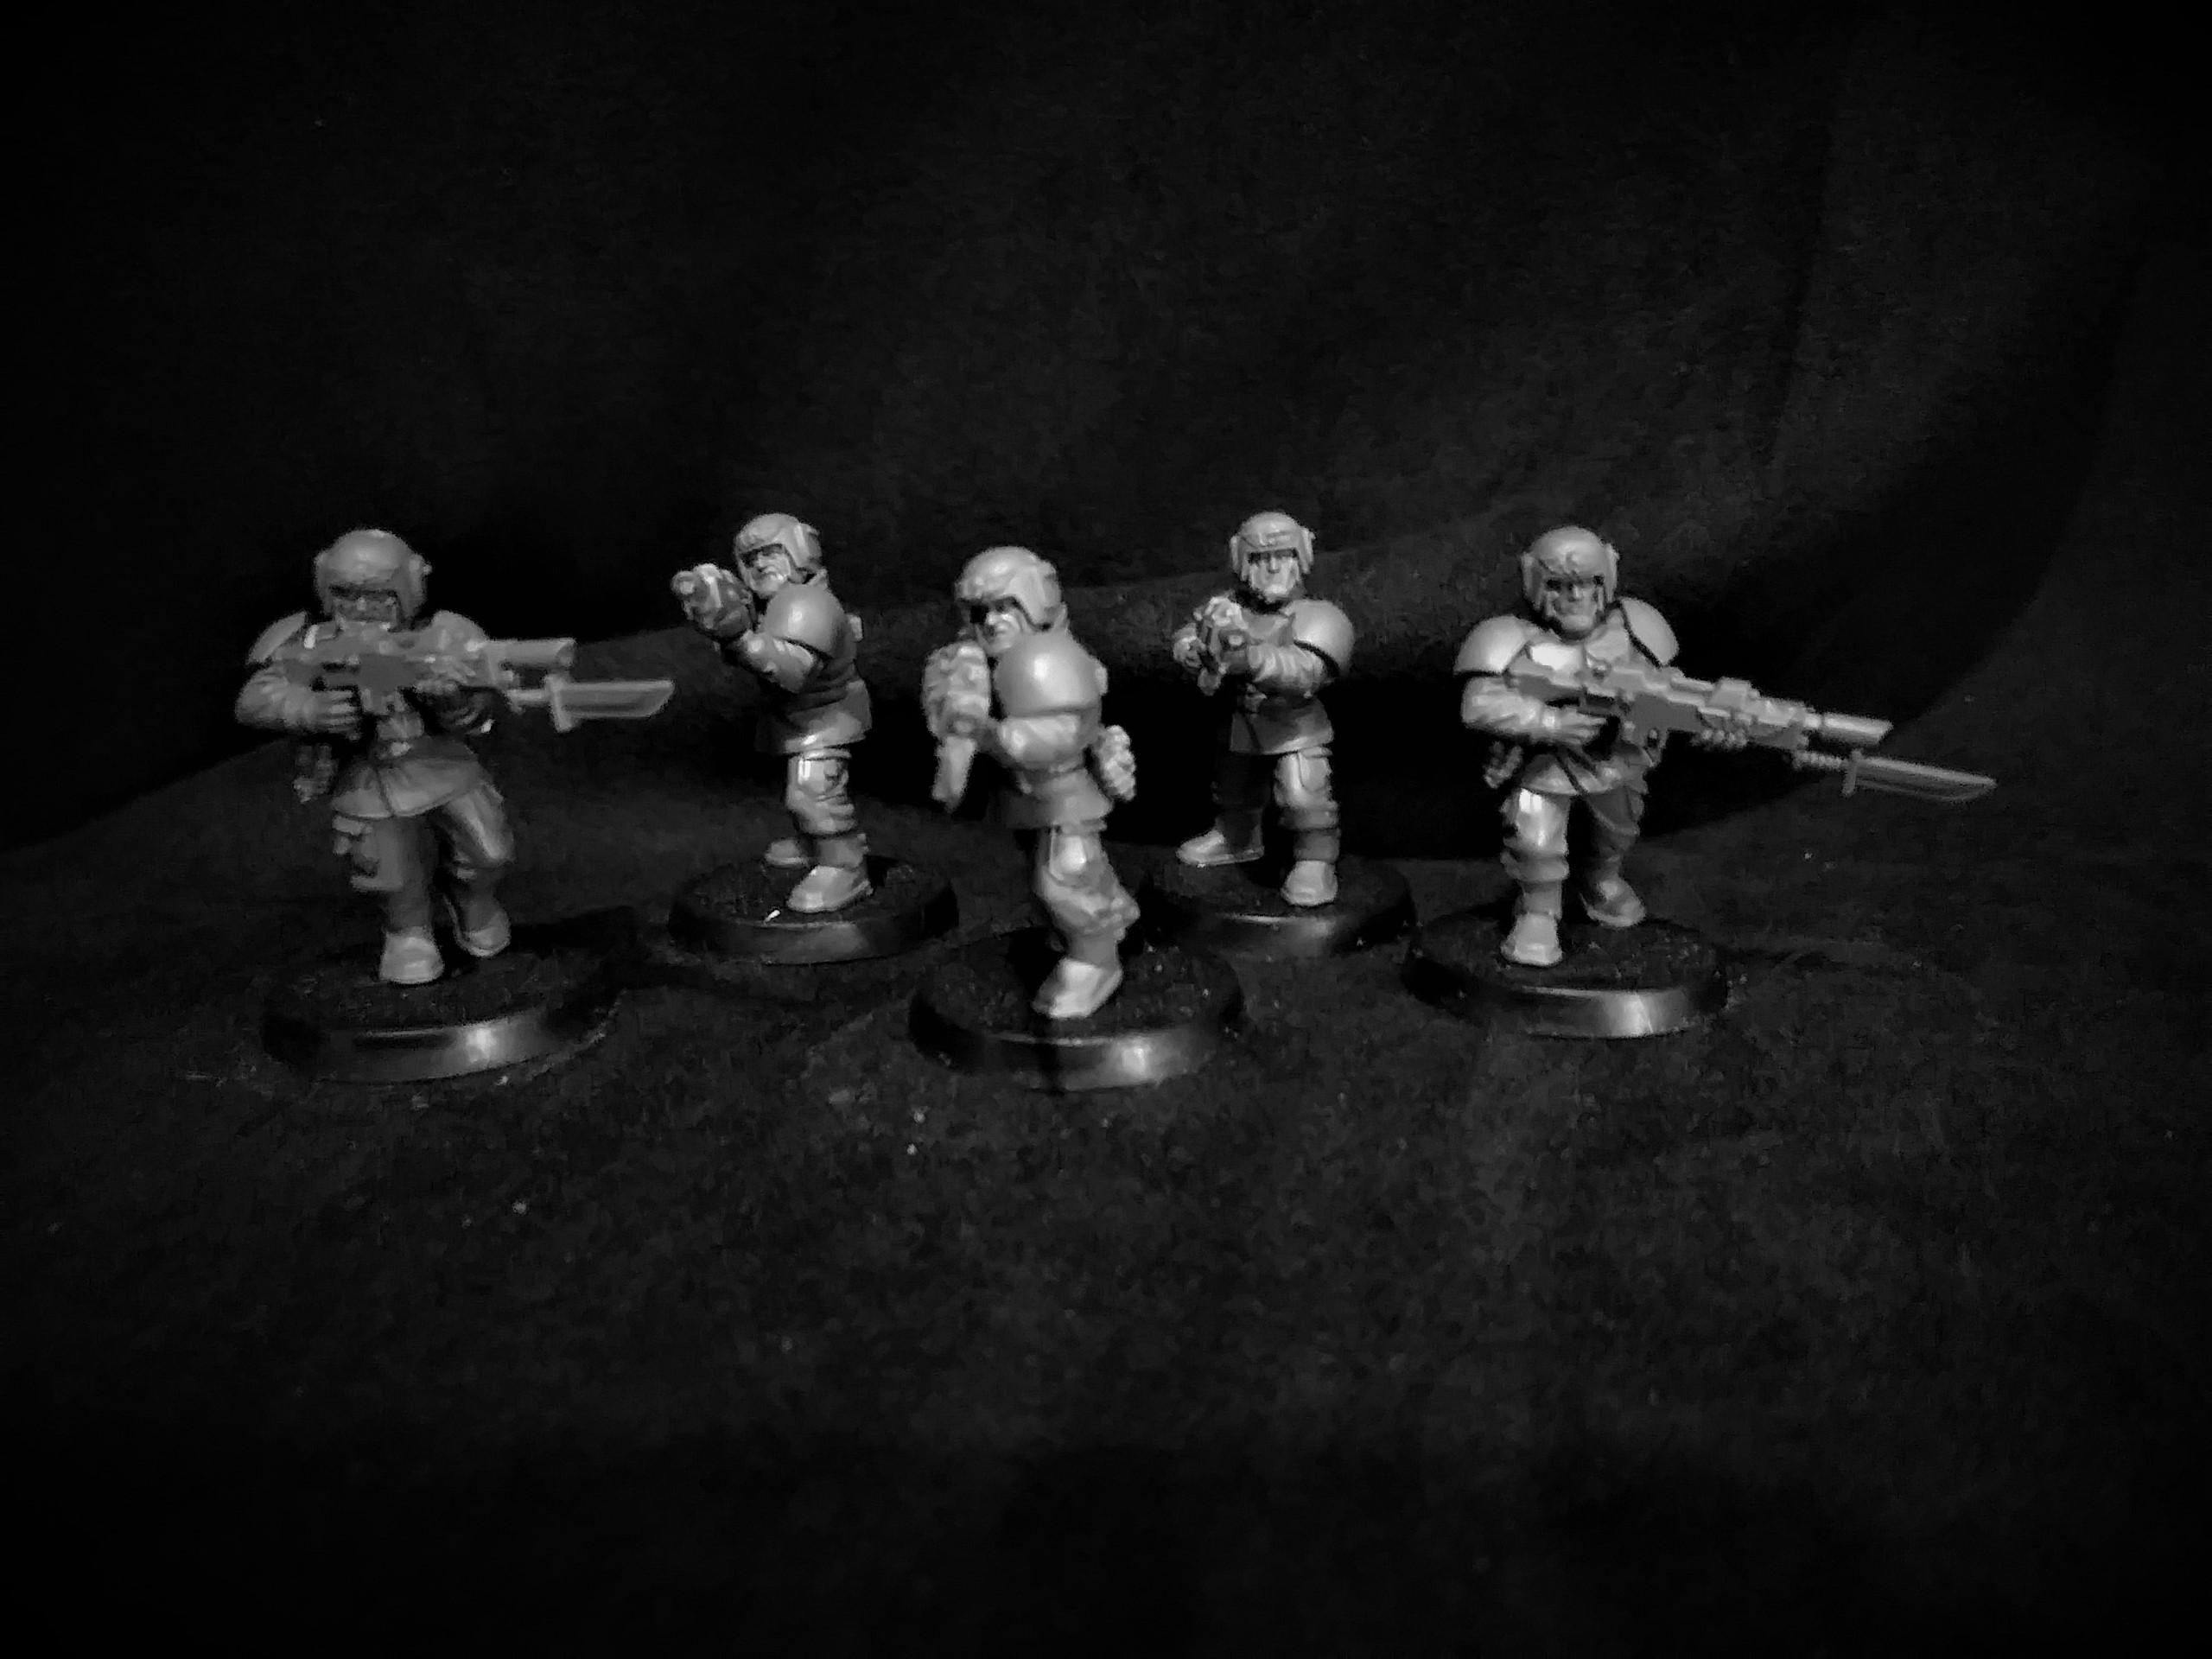 Astra Militarum, Cadian Shock Troops, Cadians, Eastern Front, Guard, Heretics, Imperial, Imperial Guard, Kronstadt, Militia, Planetary Defence Force, Red Army, Renegades, Renegades And Heretics